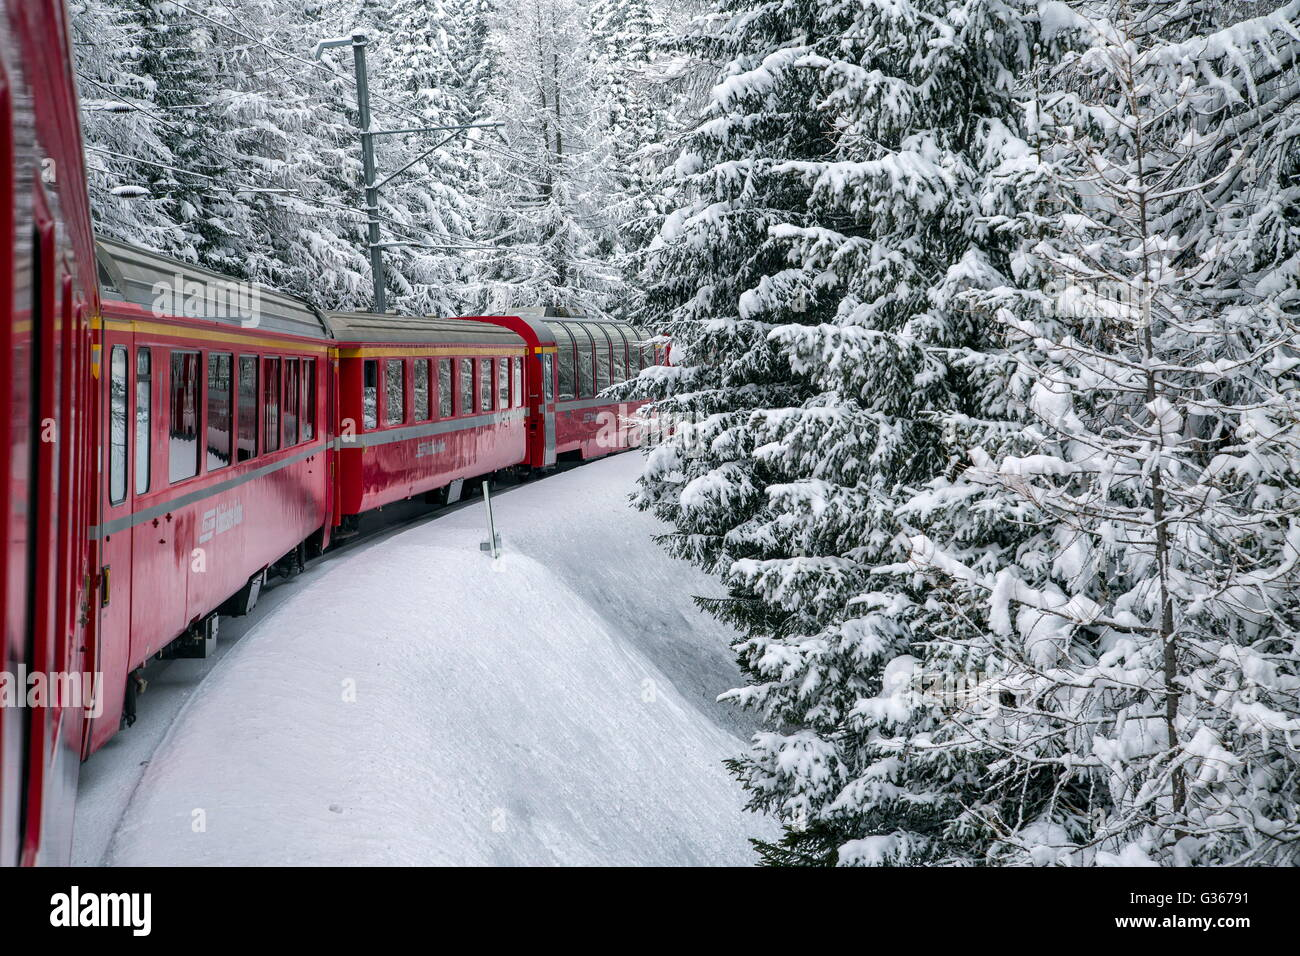 Bernina Express Train surrounded by snowy woods Filisur Canton of Graubünden Switzerland Europe - Stock Image